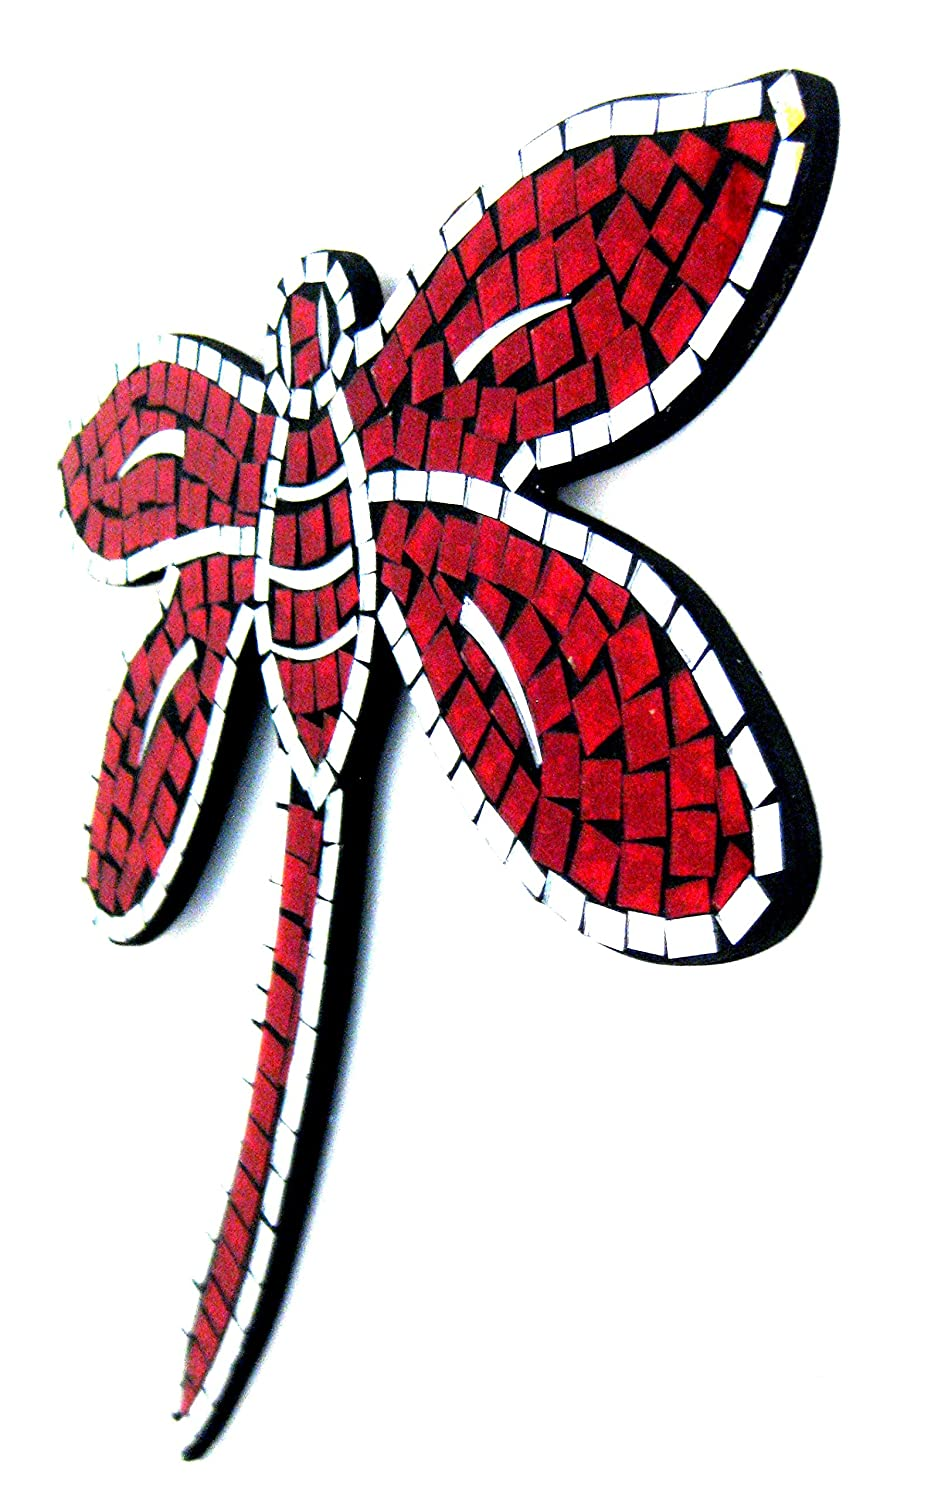 Oma Dragonfly Shaped Mosaic Wall Hanging Decor Dragon Fly Mirror – RED